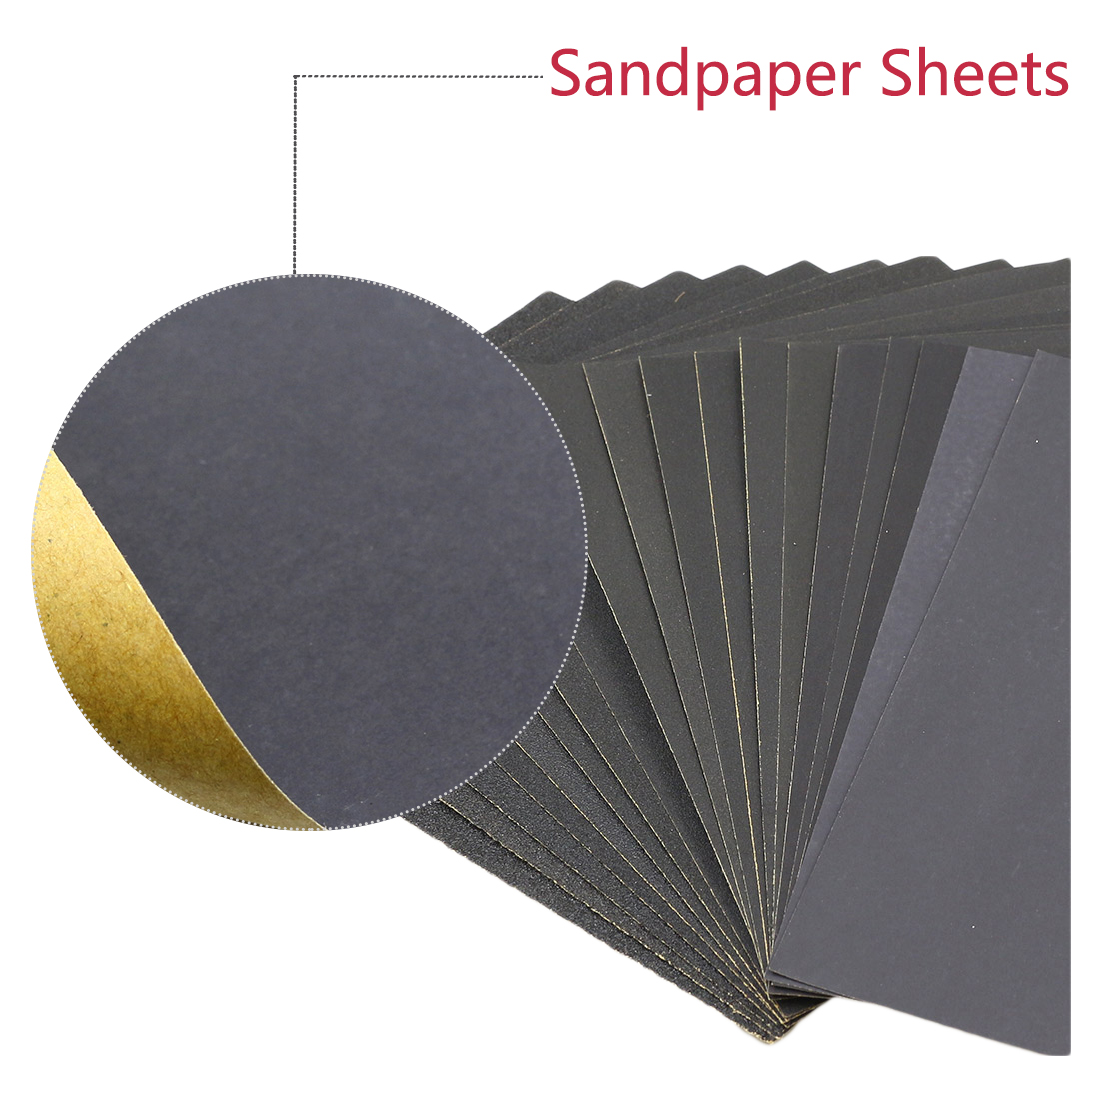 Grit 3000 5000 7000 Wet And Dry Sandpaper Polishing Abrasive Waterproof Paper Sheets  230*280mm